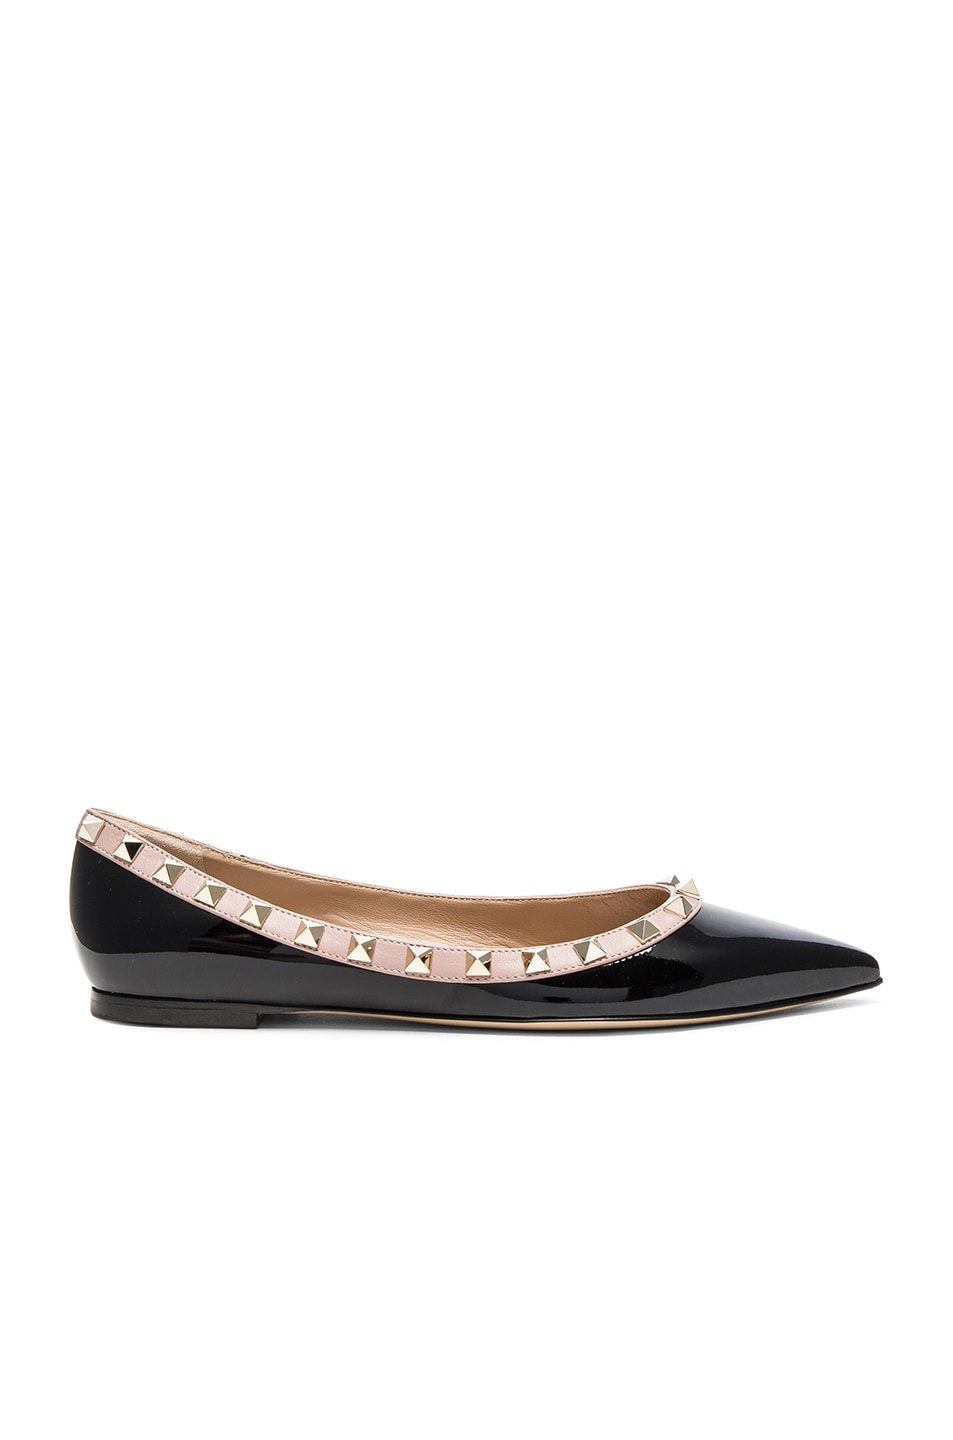 Image 1 of Valentino Leather Rockstud Ballerina Flats in Black & Poudre